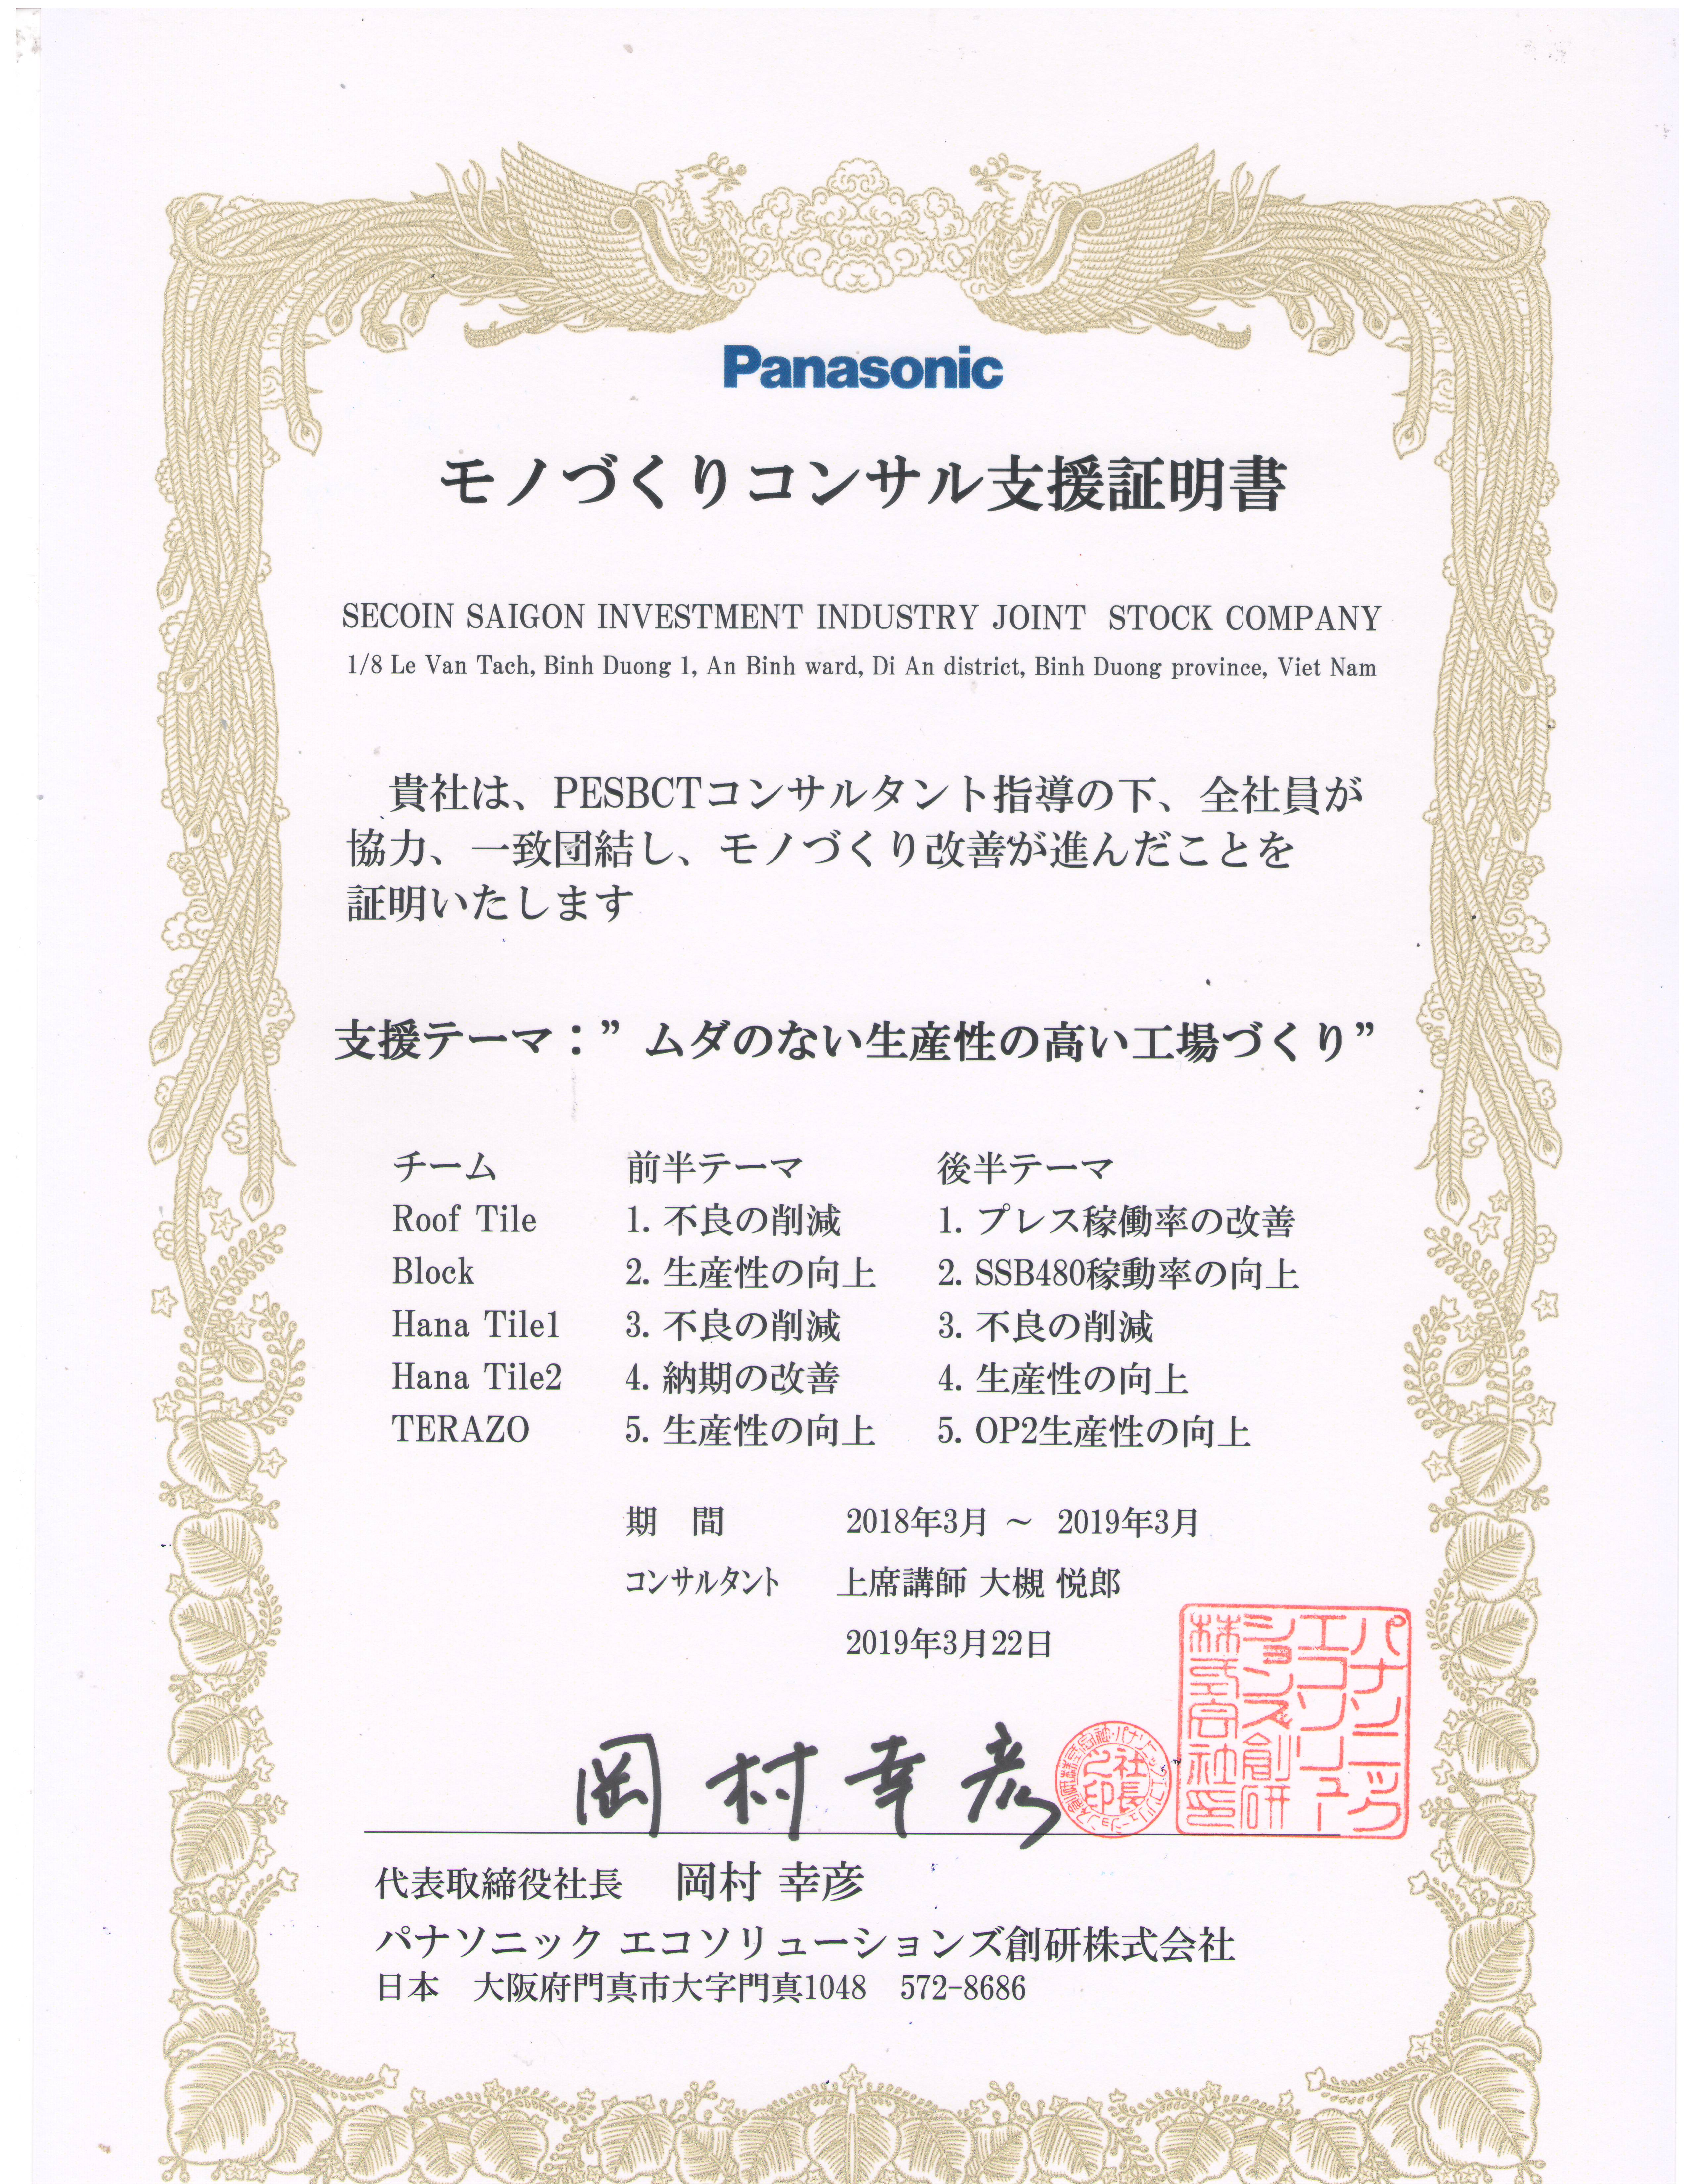 Lean Manufacturing certificate from Panasonic